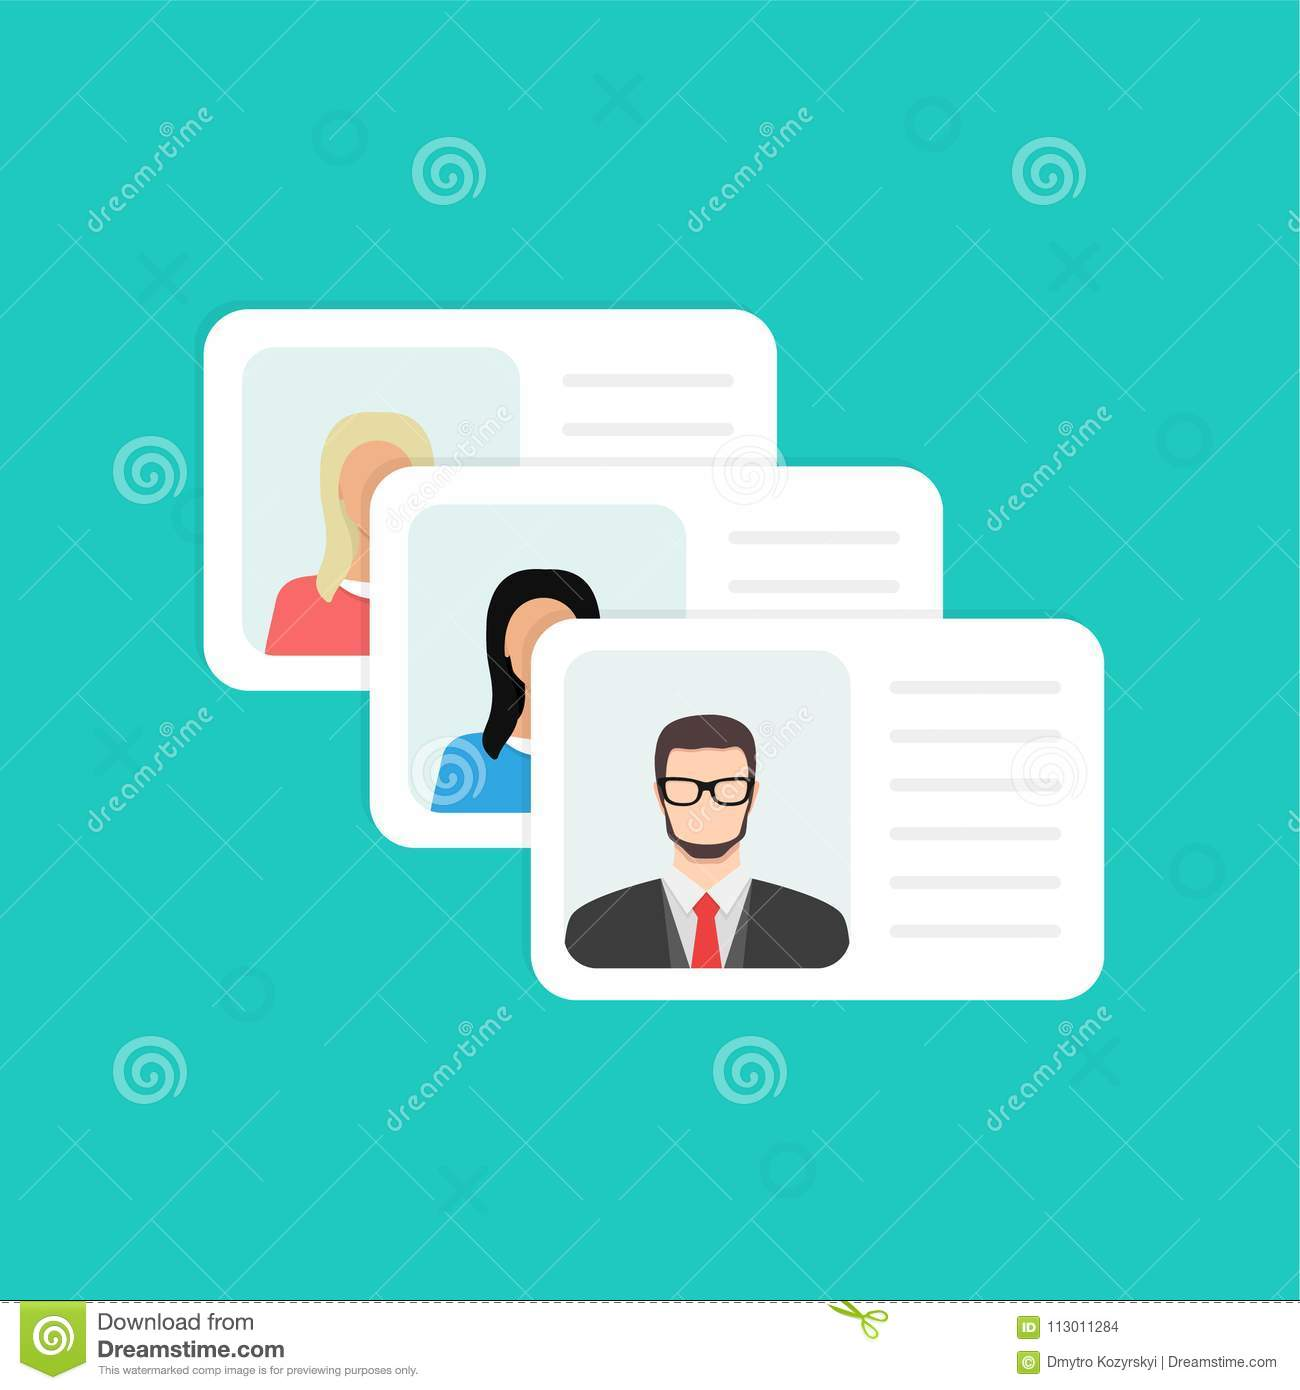 Design Stock Photo Text Of Entry And Illustration Person